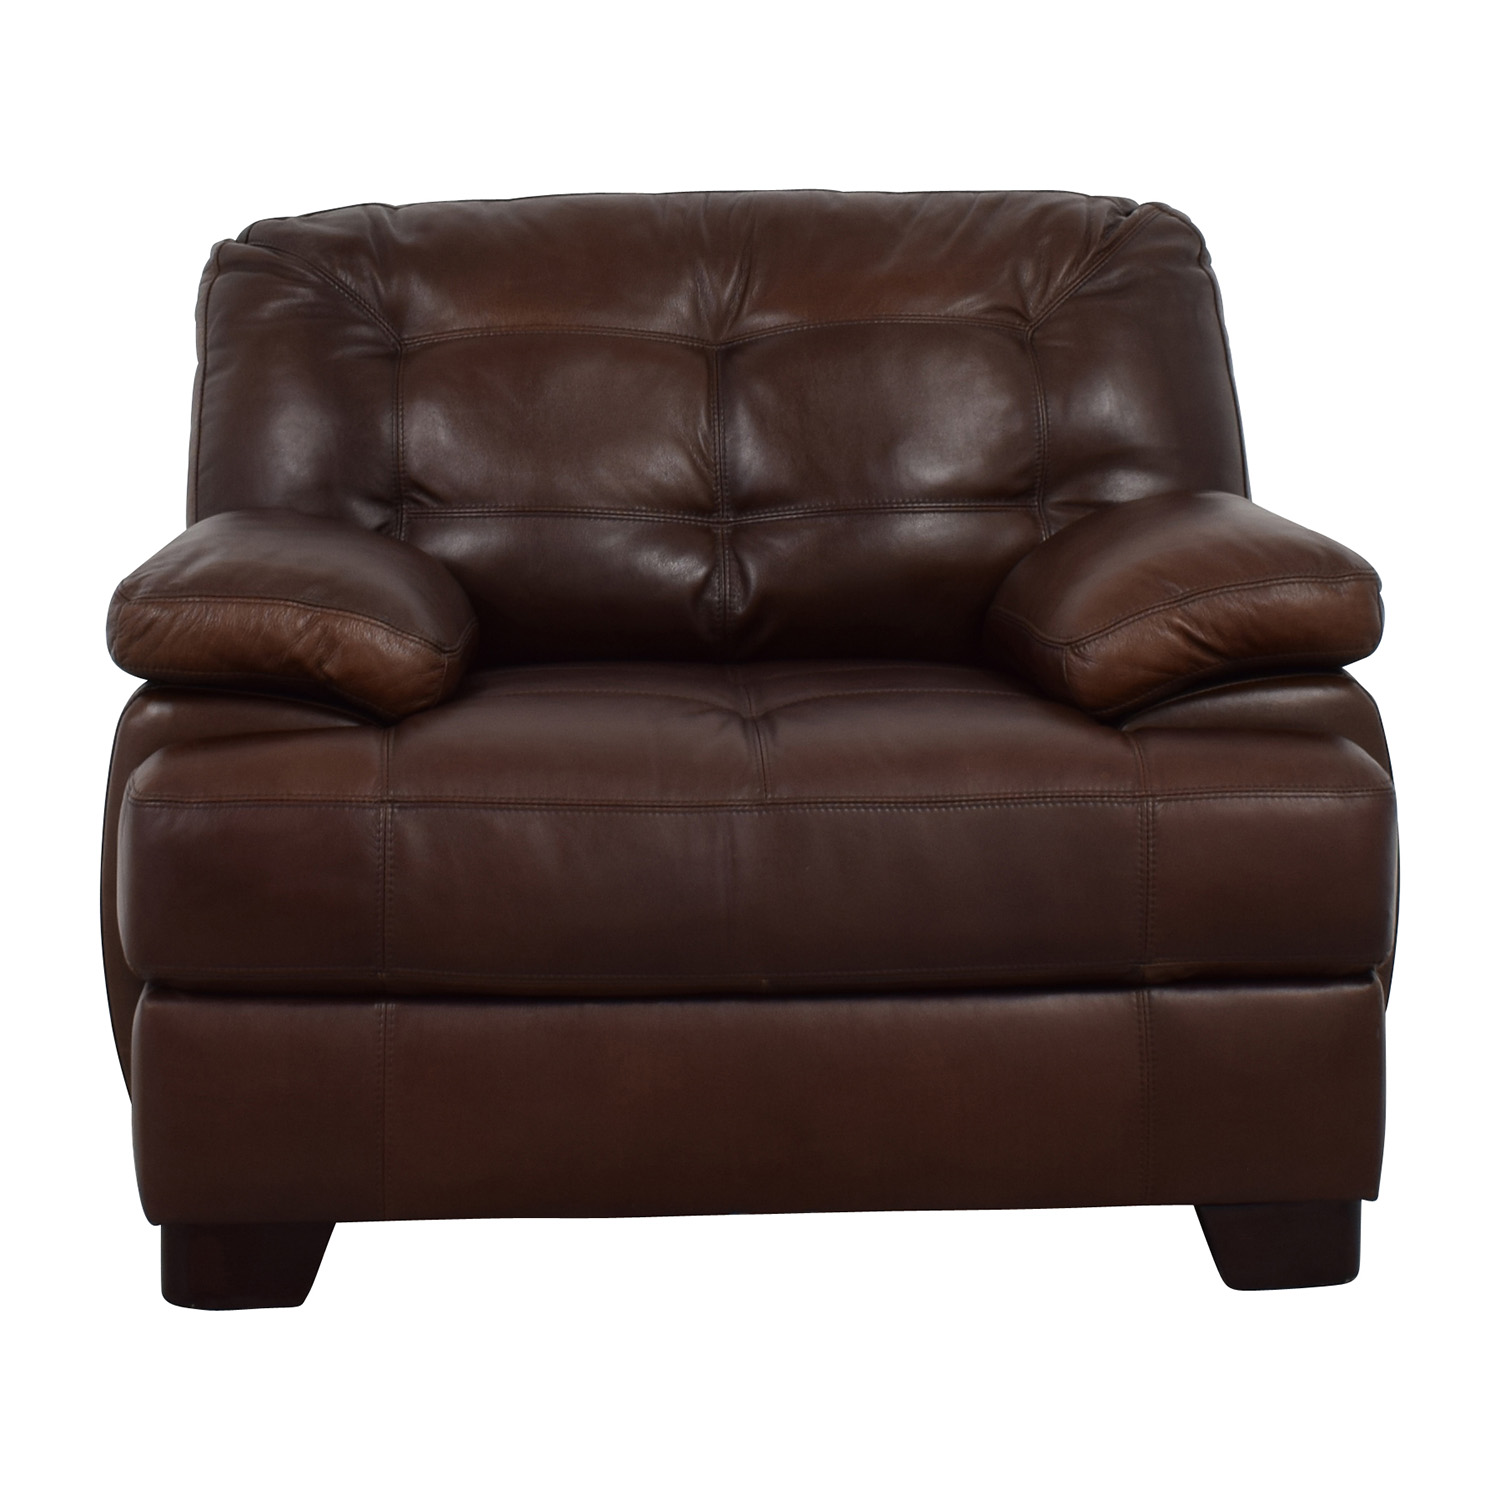 Accent Chairs To Go With Brown Leather Sofa 76 Off Simon Li Simmon Li Monarch Dark Brown Leather Chair Chairs